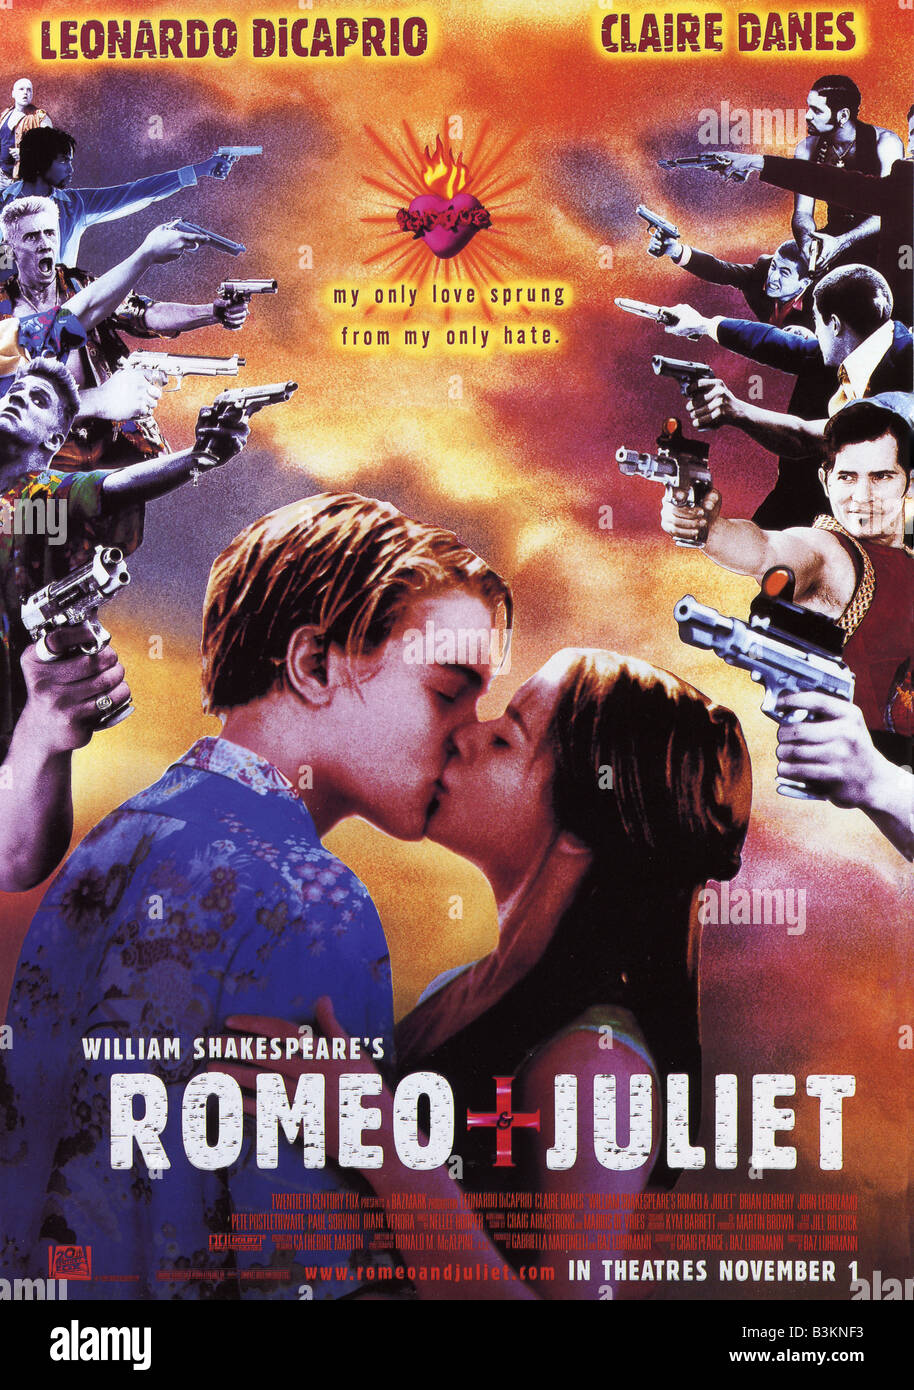 WILLIAM SHAKESPEARE'S Romeo and Juliet affiche de 1996 TCF/Bazmark film avec Leonardo DiCaprio et Claire Danes Photo Stock